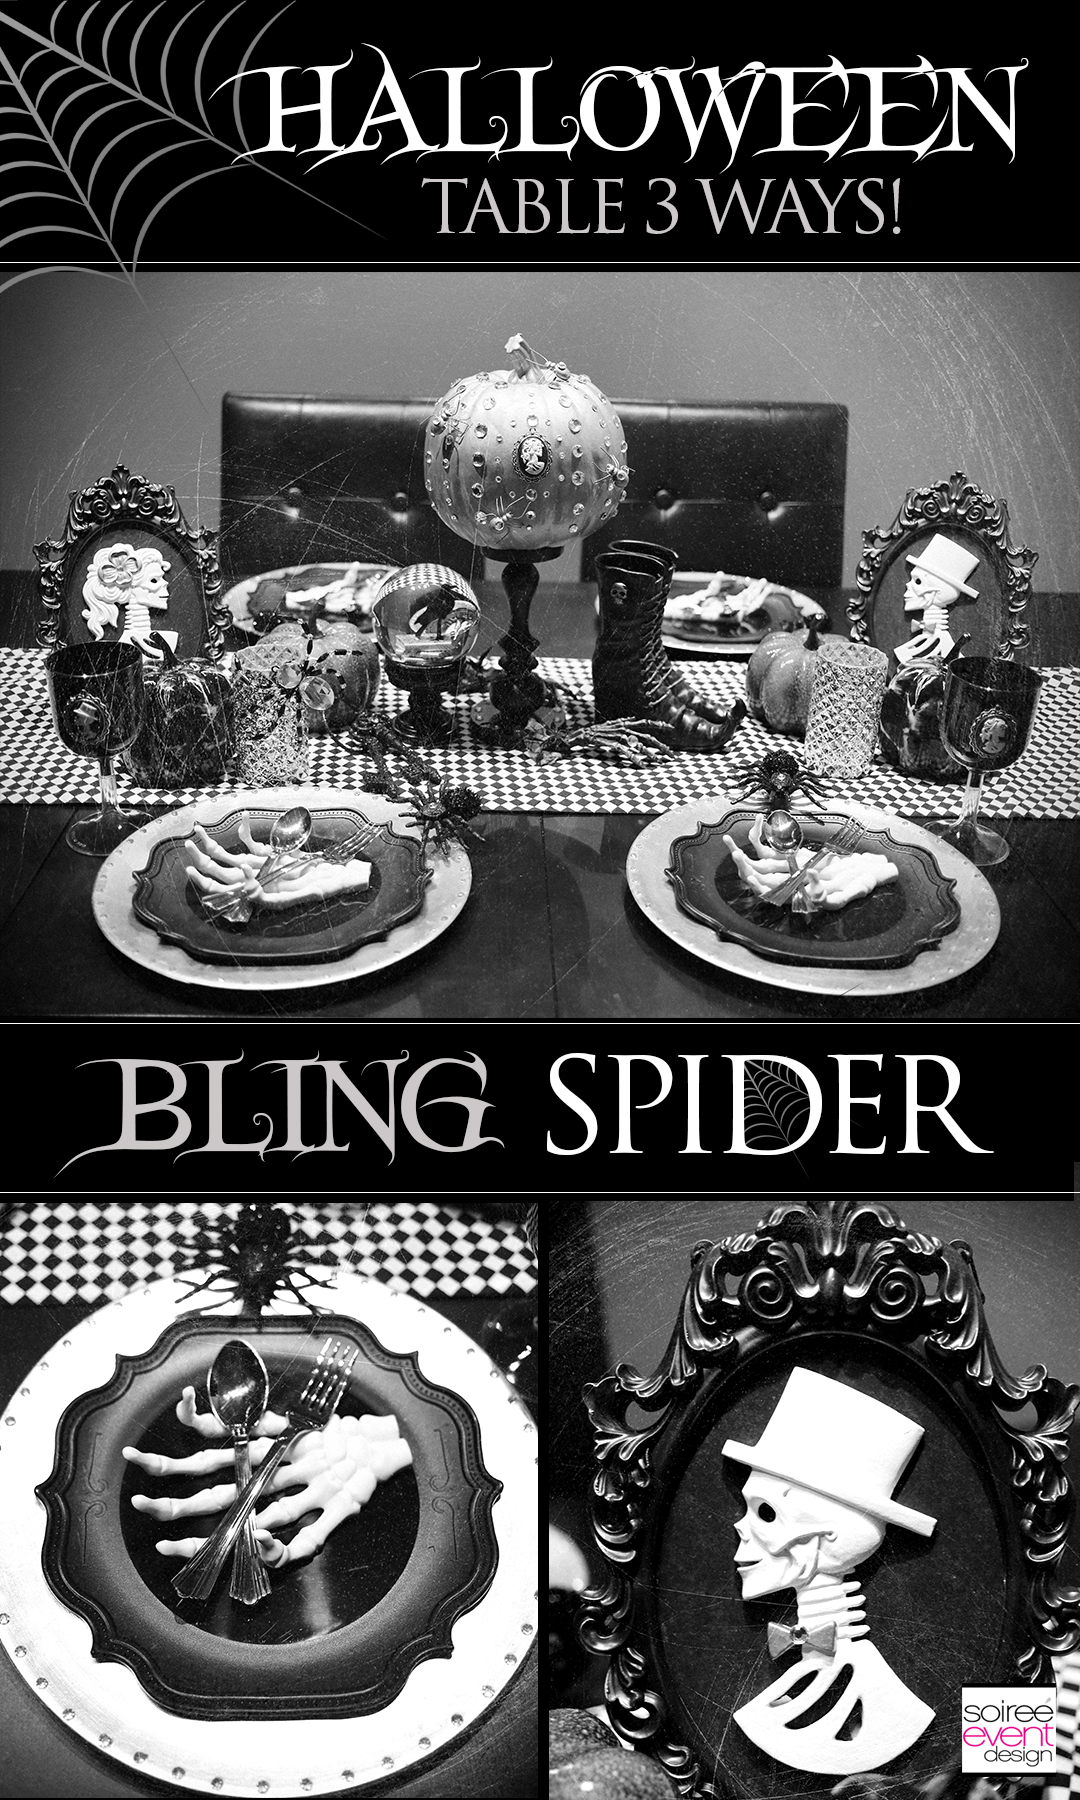 halloween-table-3-ways-bling-spider